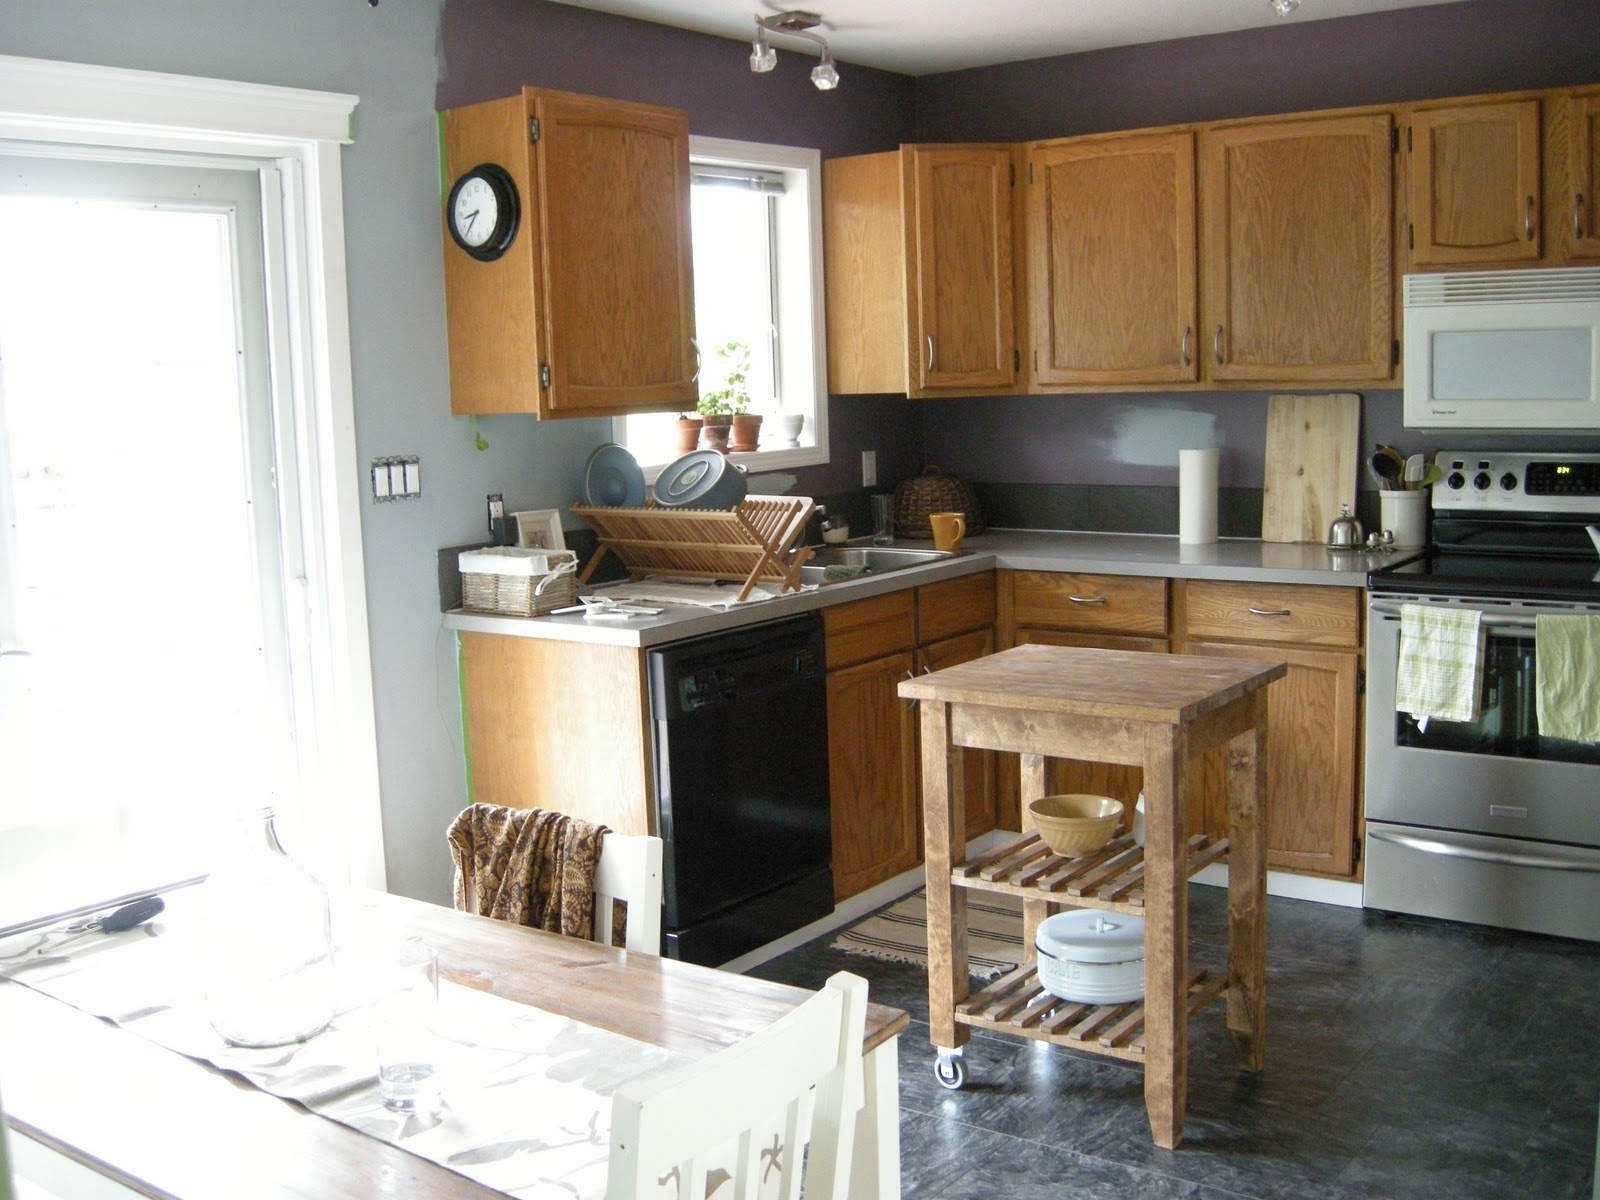 Gray Kitchen Floors With Oak Cabinetsbesf of ideas kitchen wall colors gray paint decoration yellow